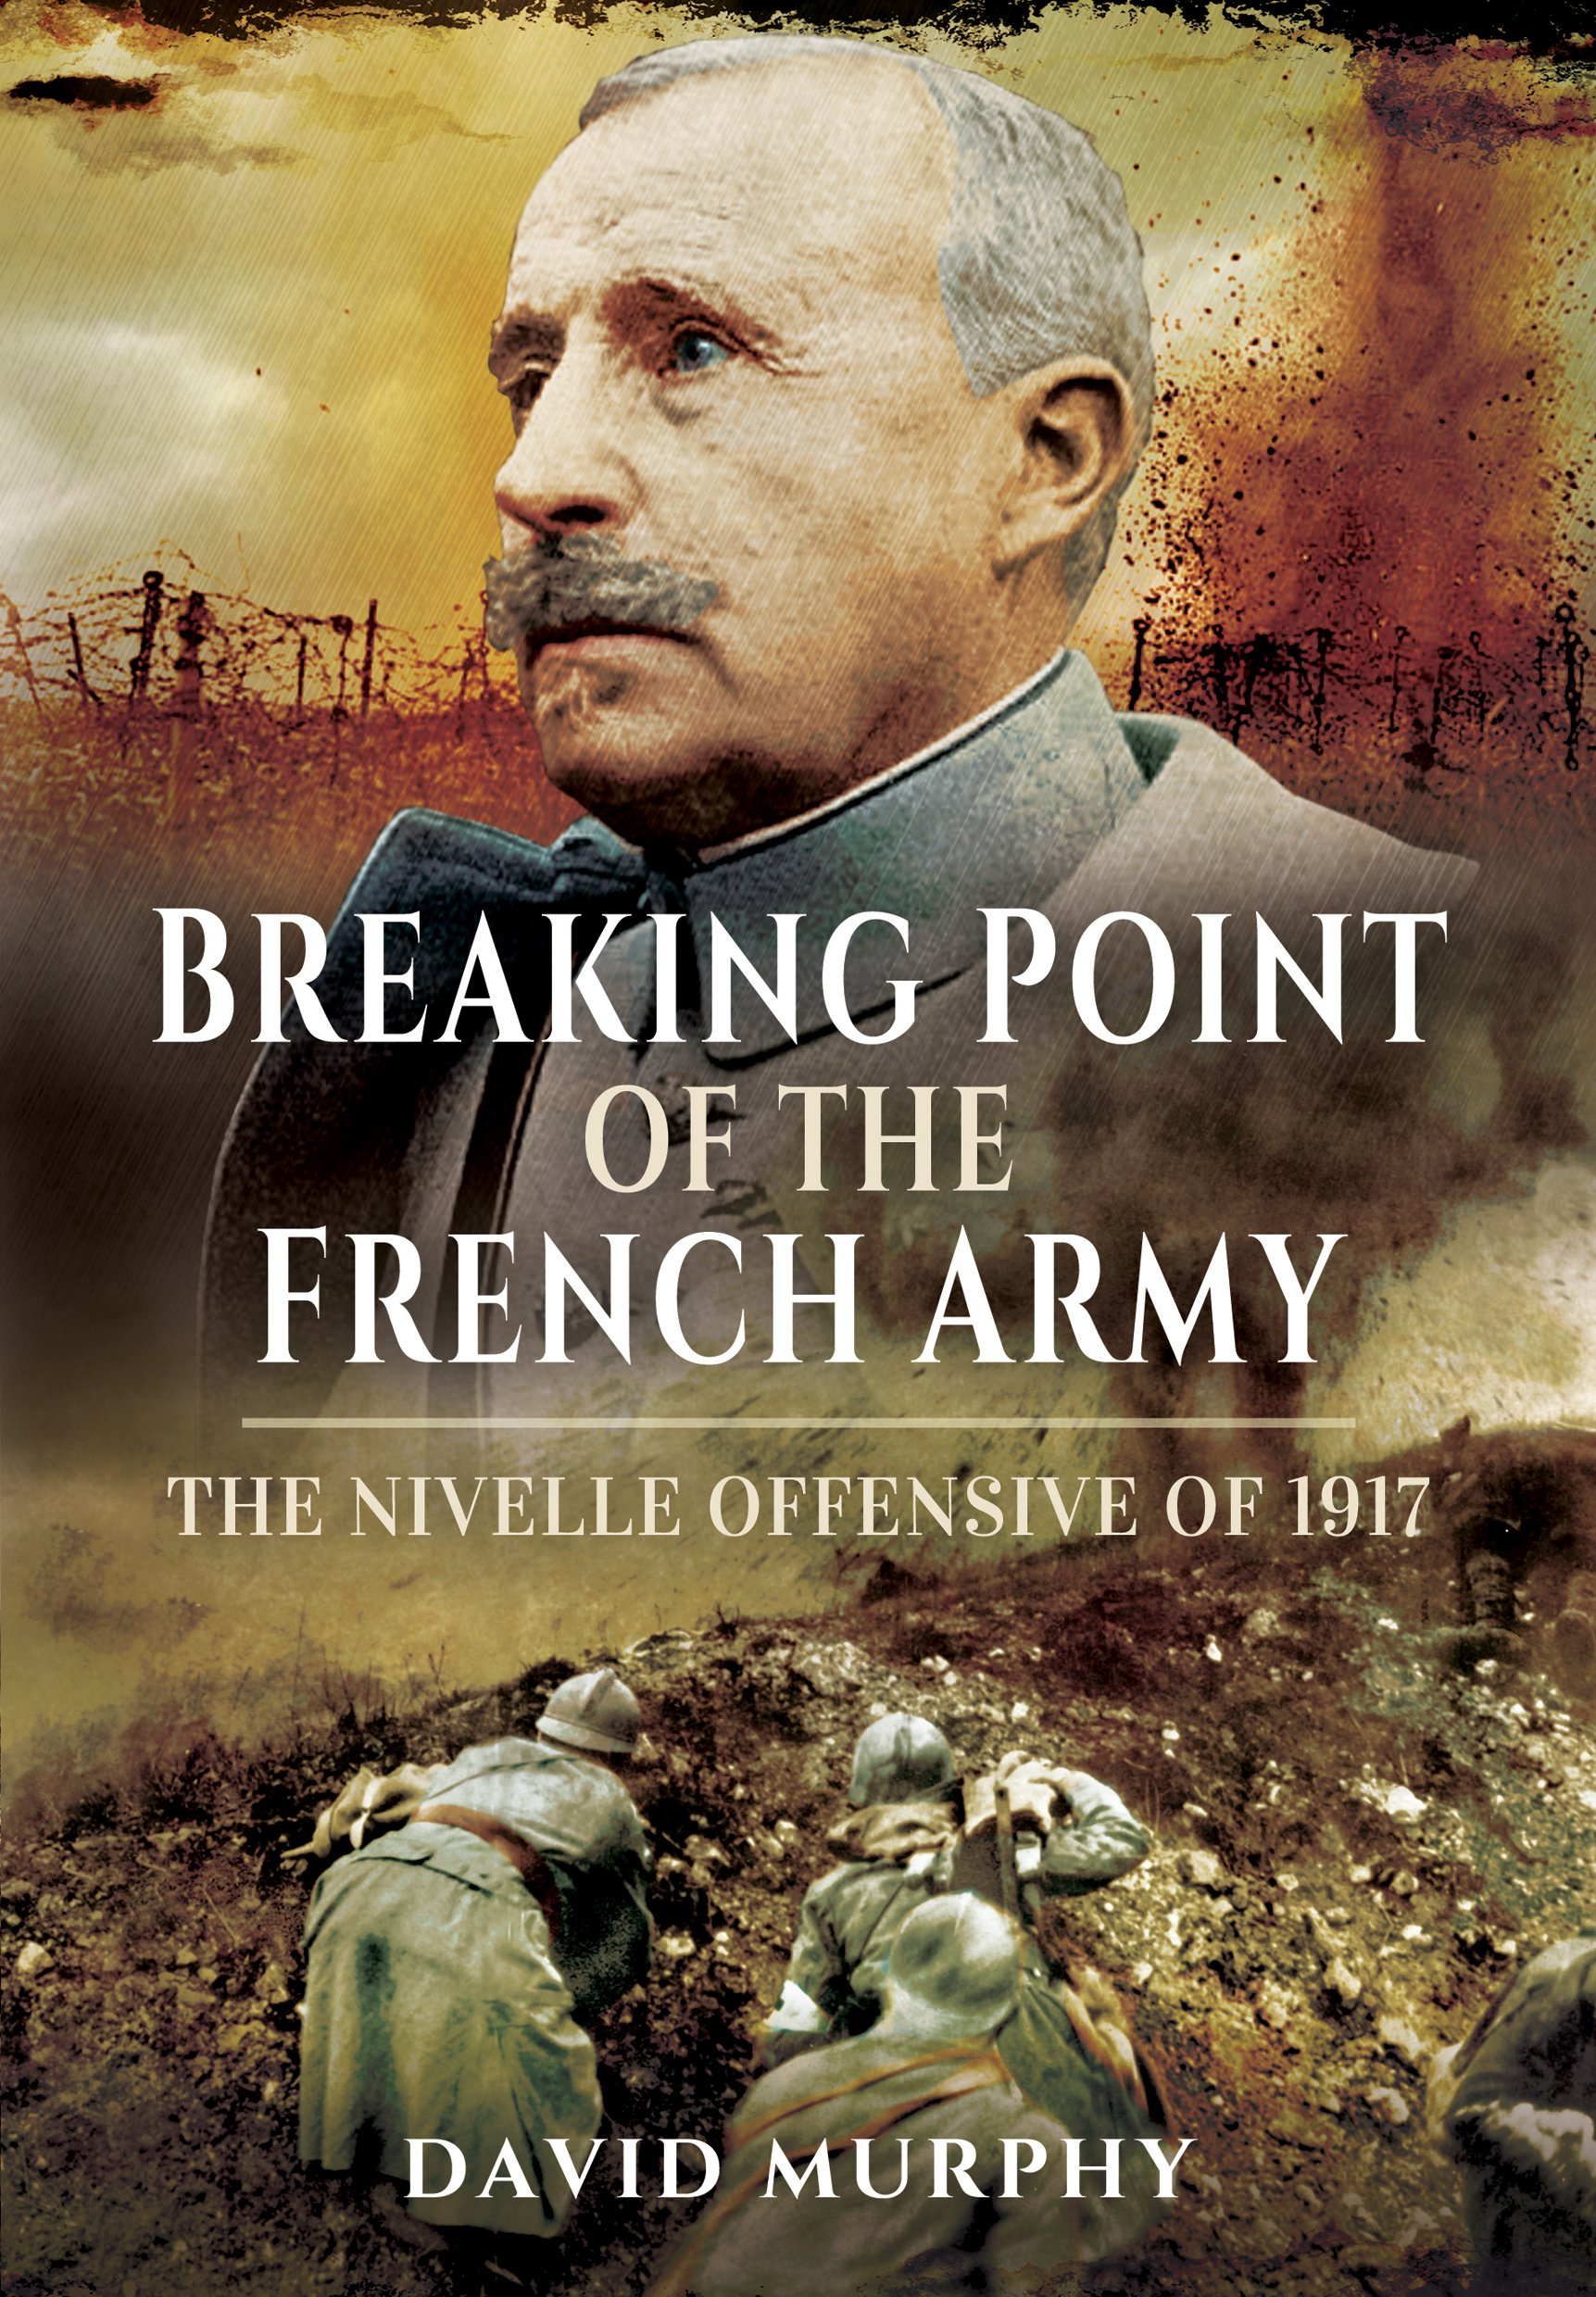 breaking-point-of-the-french-army-the-nivelle-offensive-of-1917